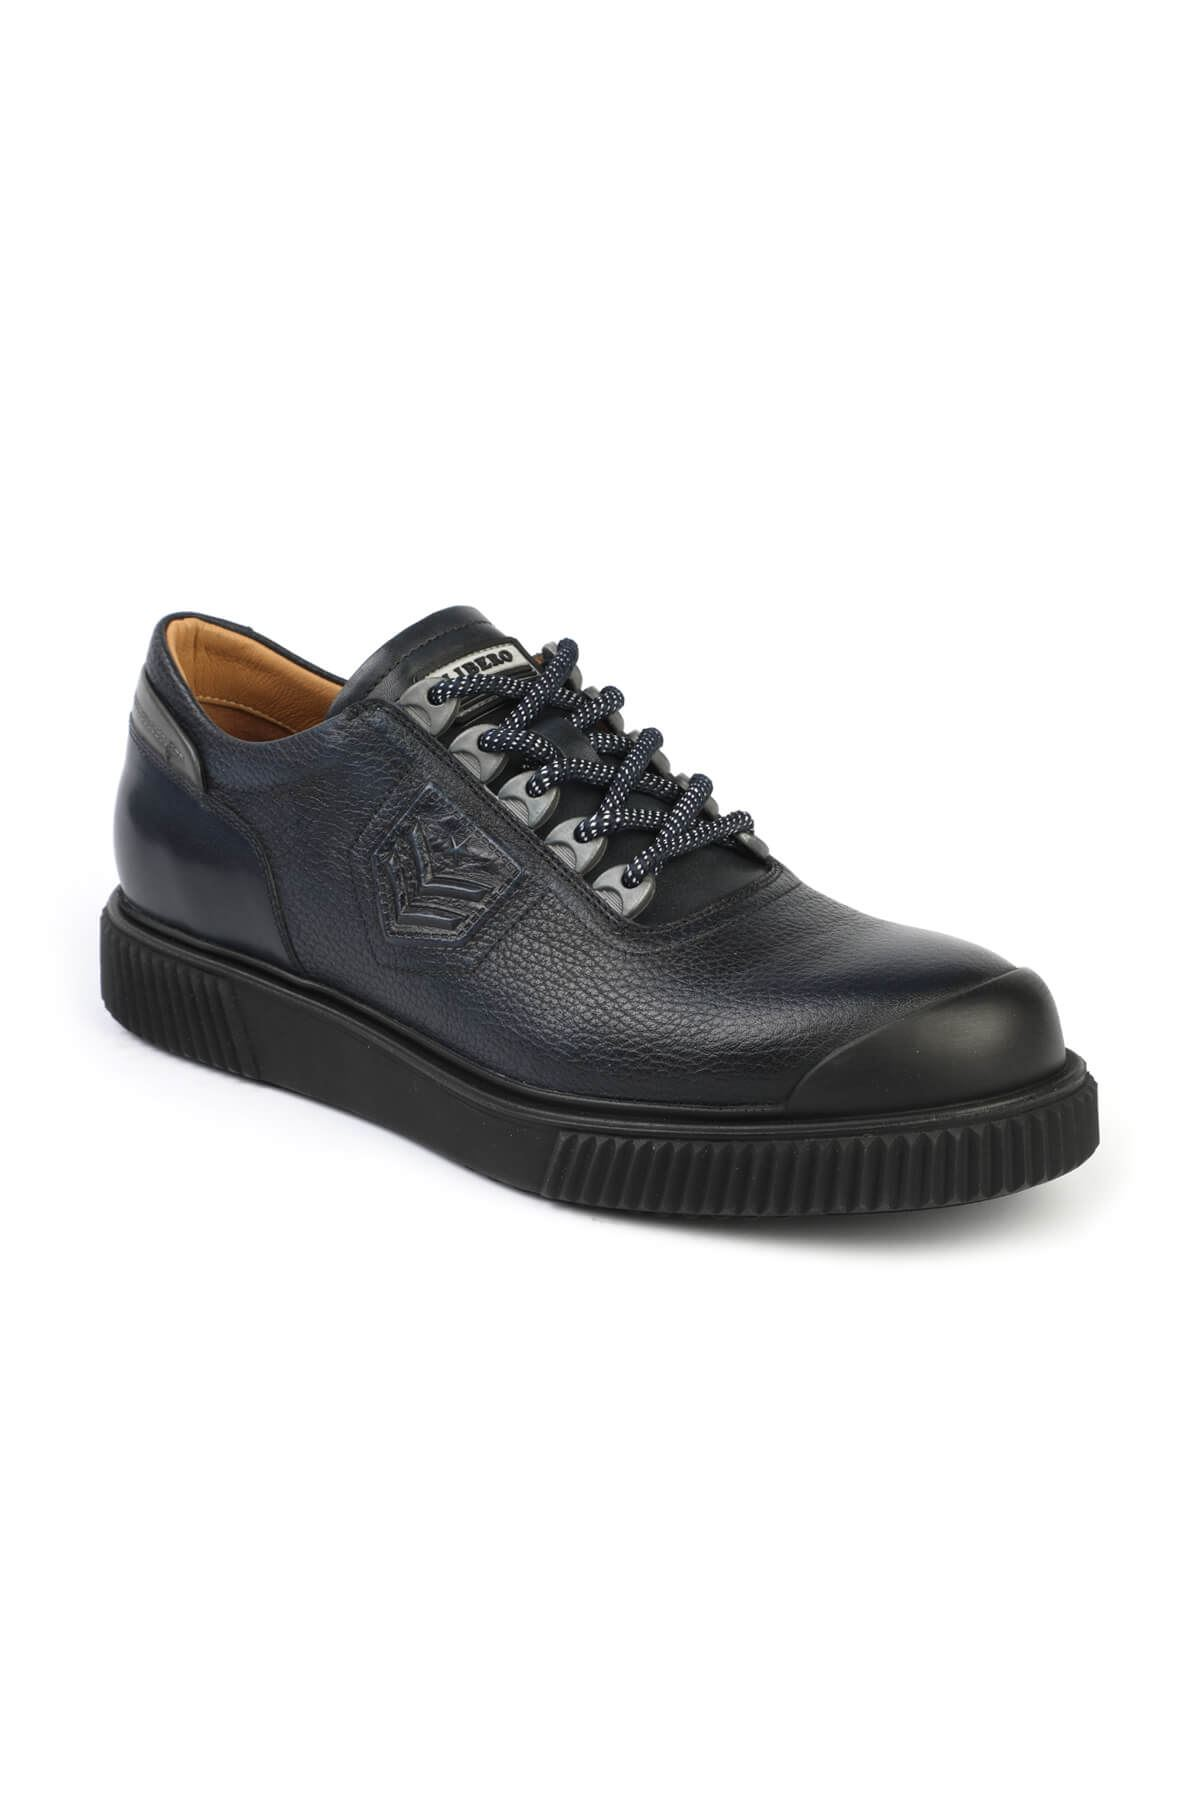 Libero 3175 Navy Blue Casual Shoes